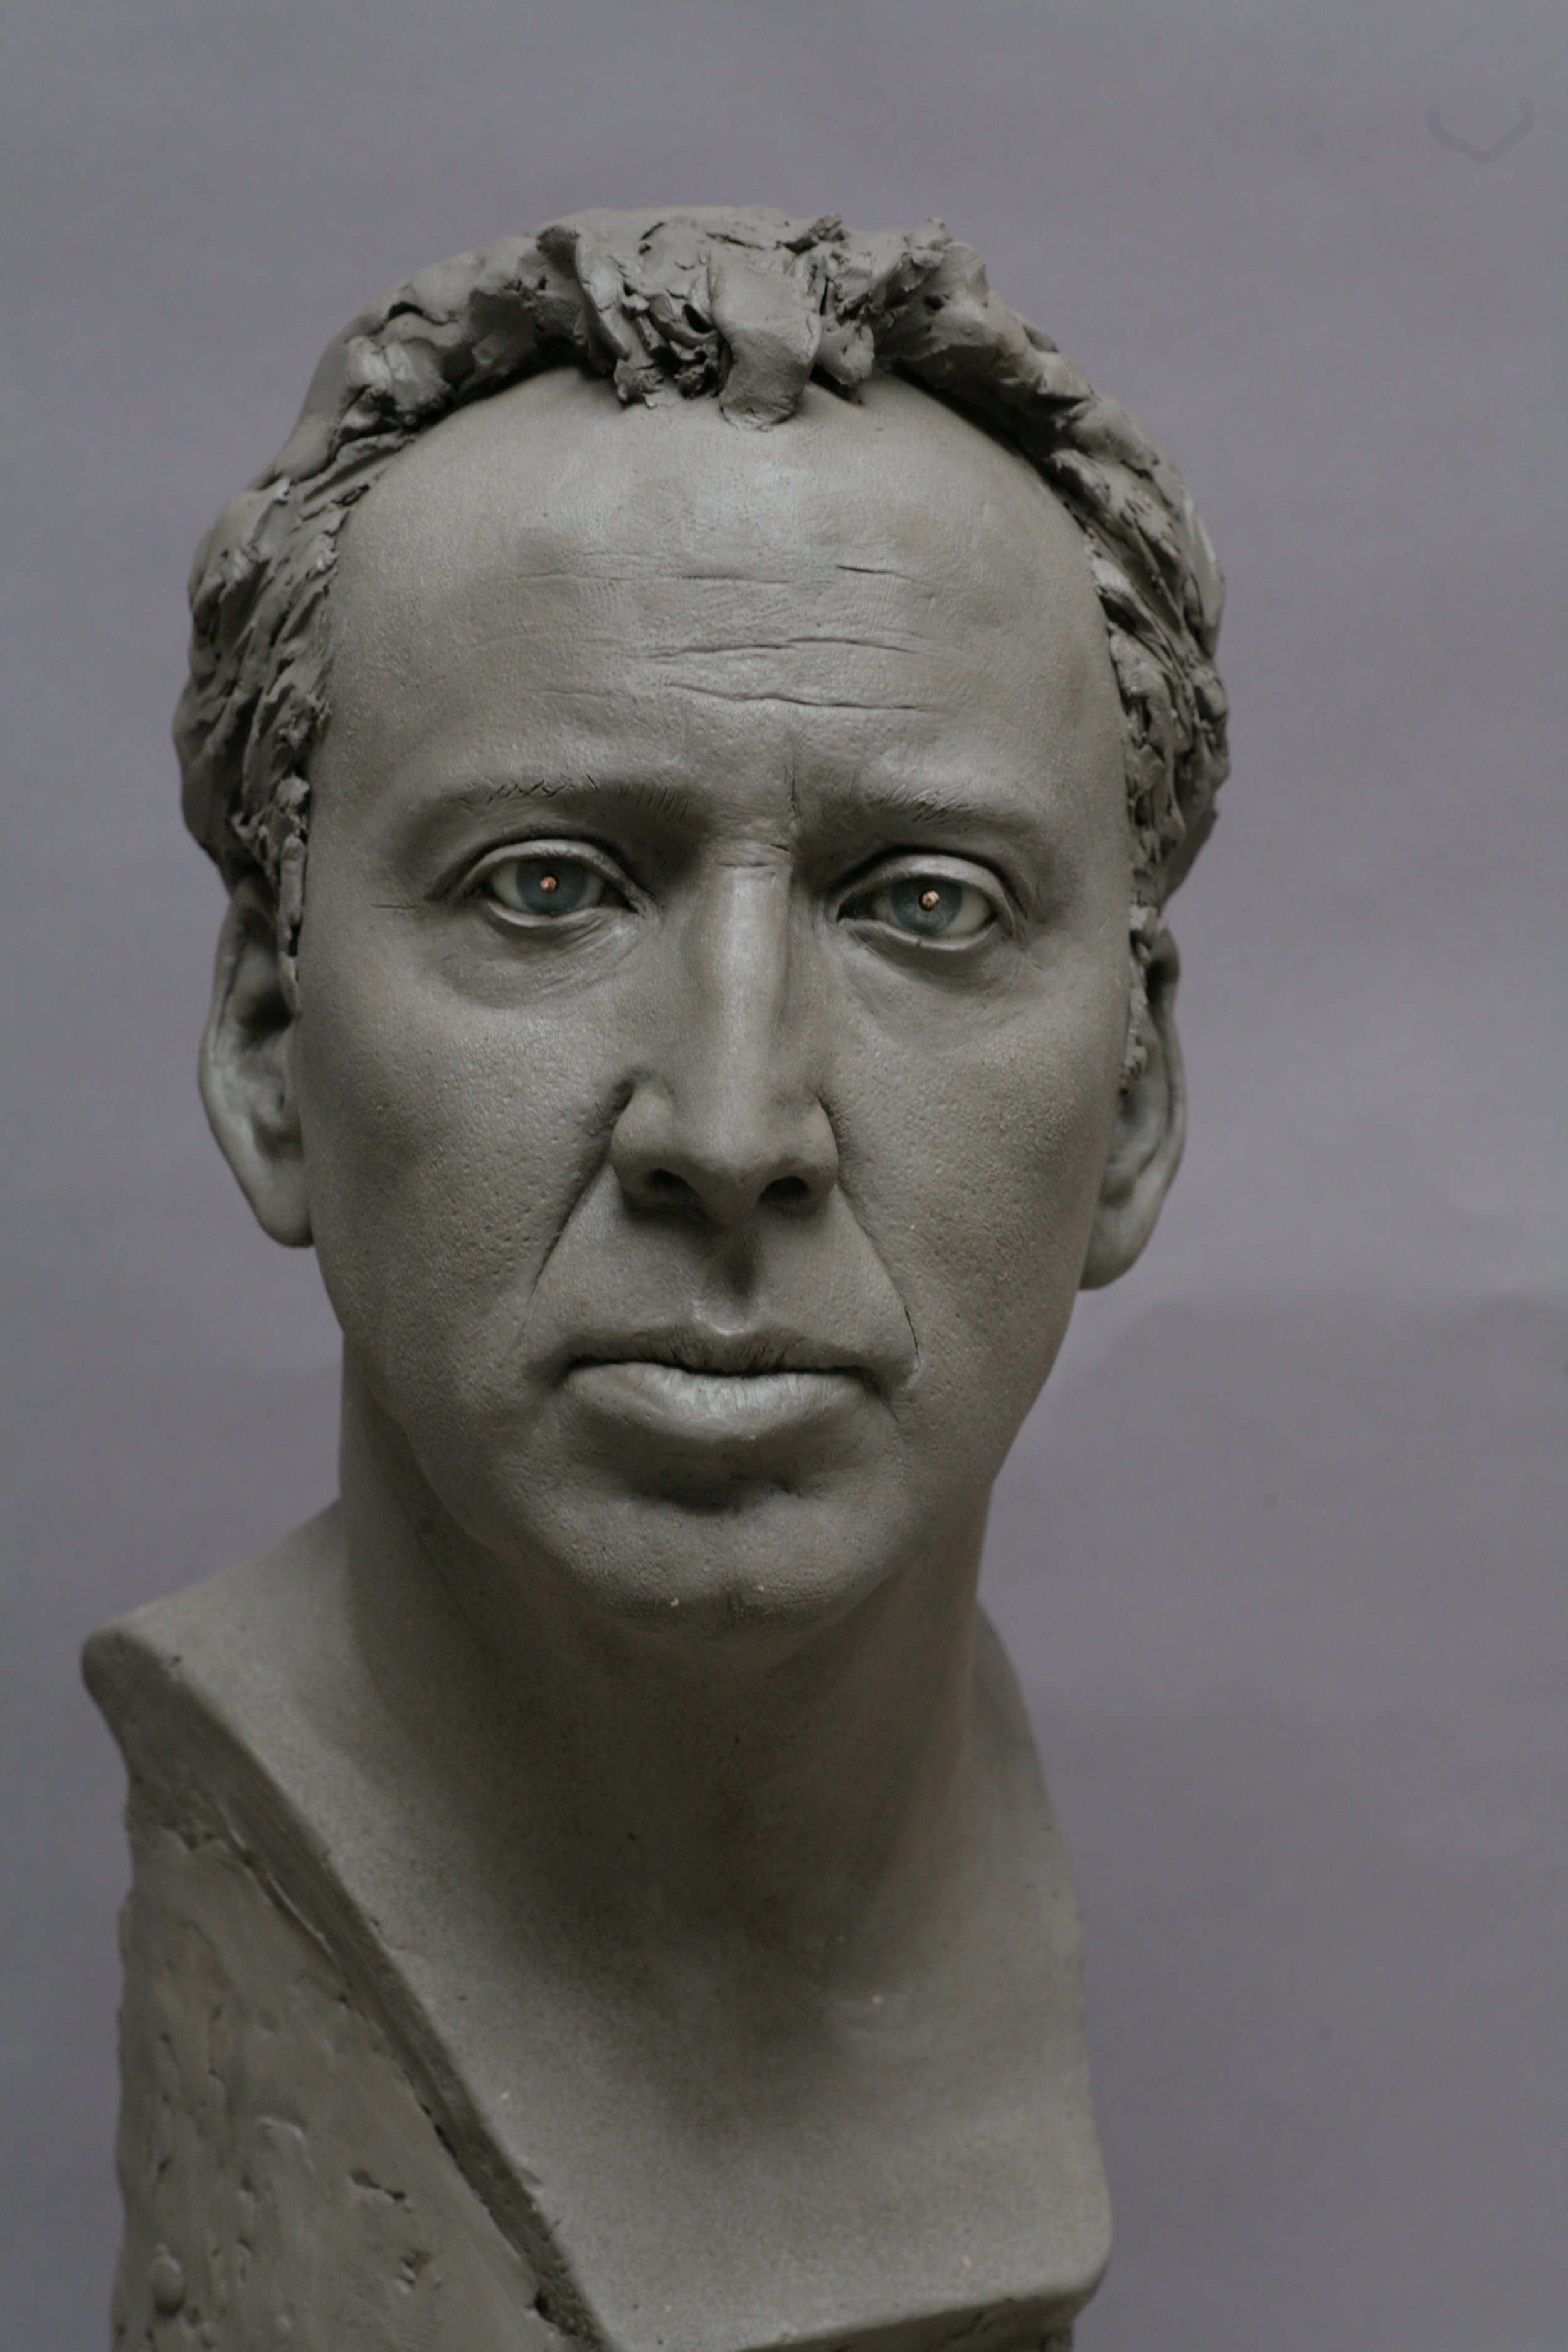 Clay sculpture by Eric Saint Chaffray - Nicolas Cage - Credit Musée Grévin